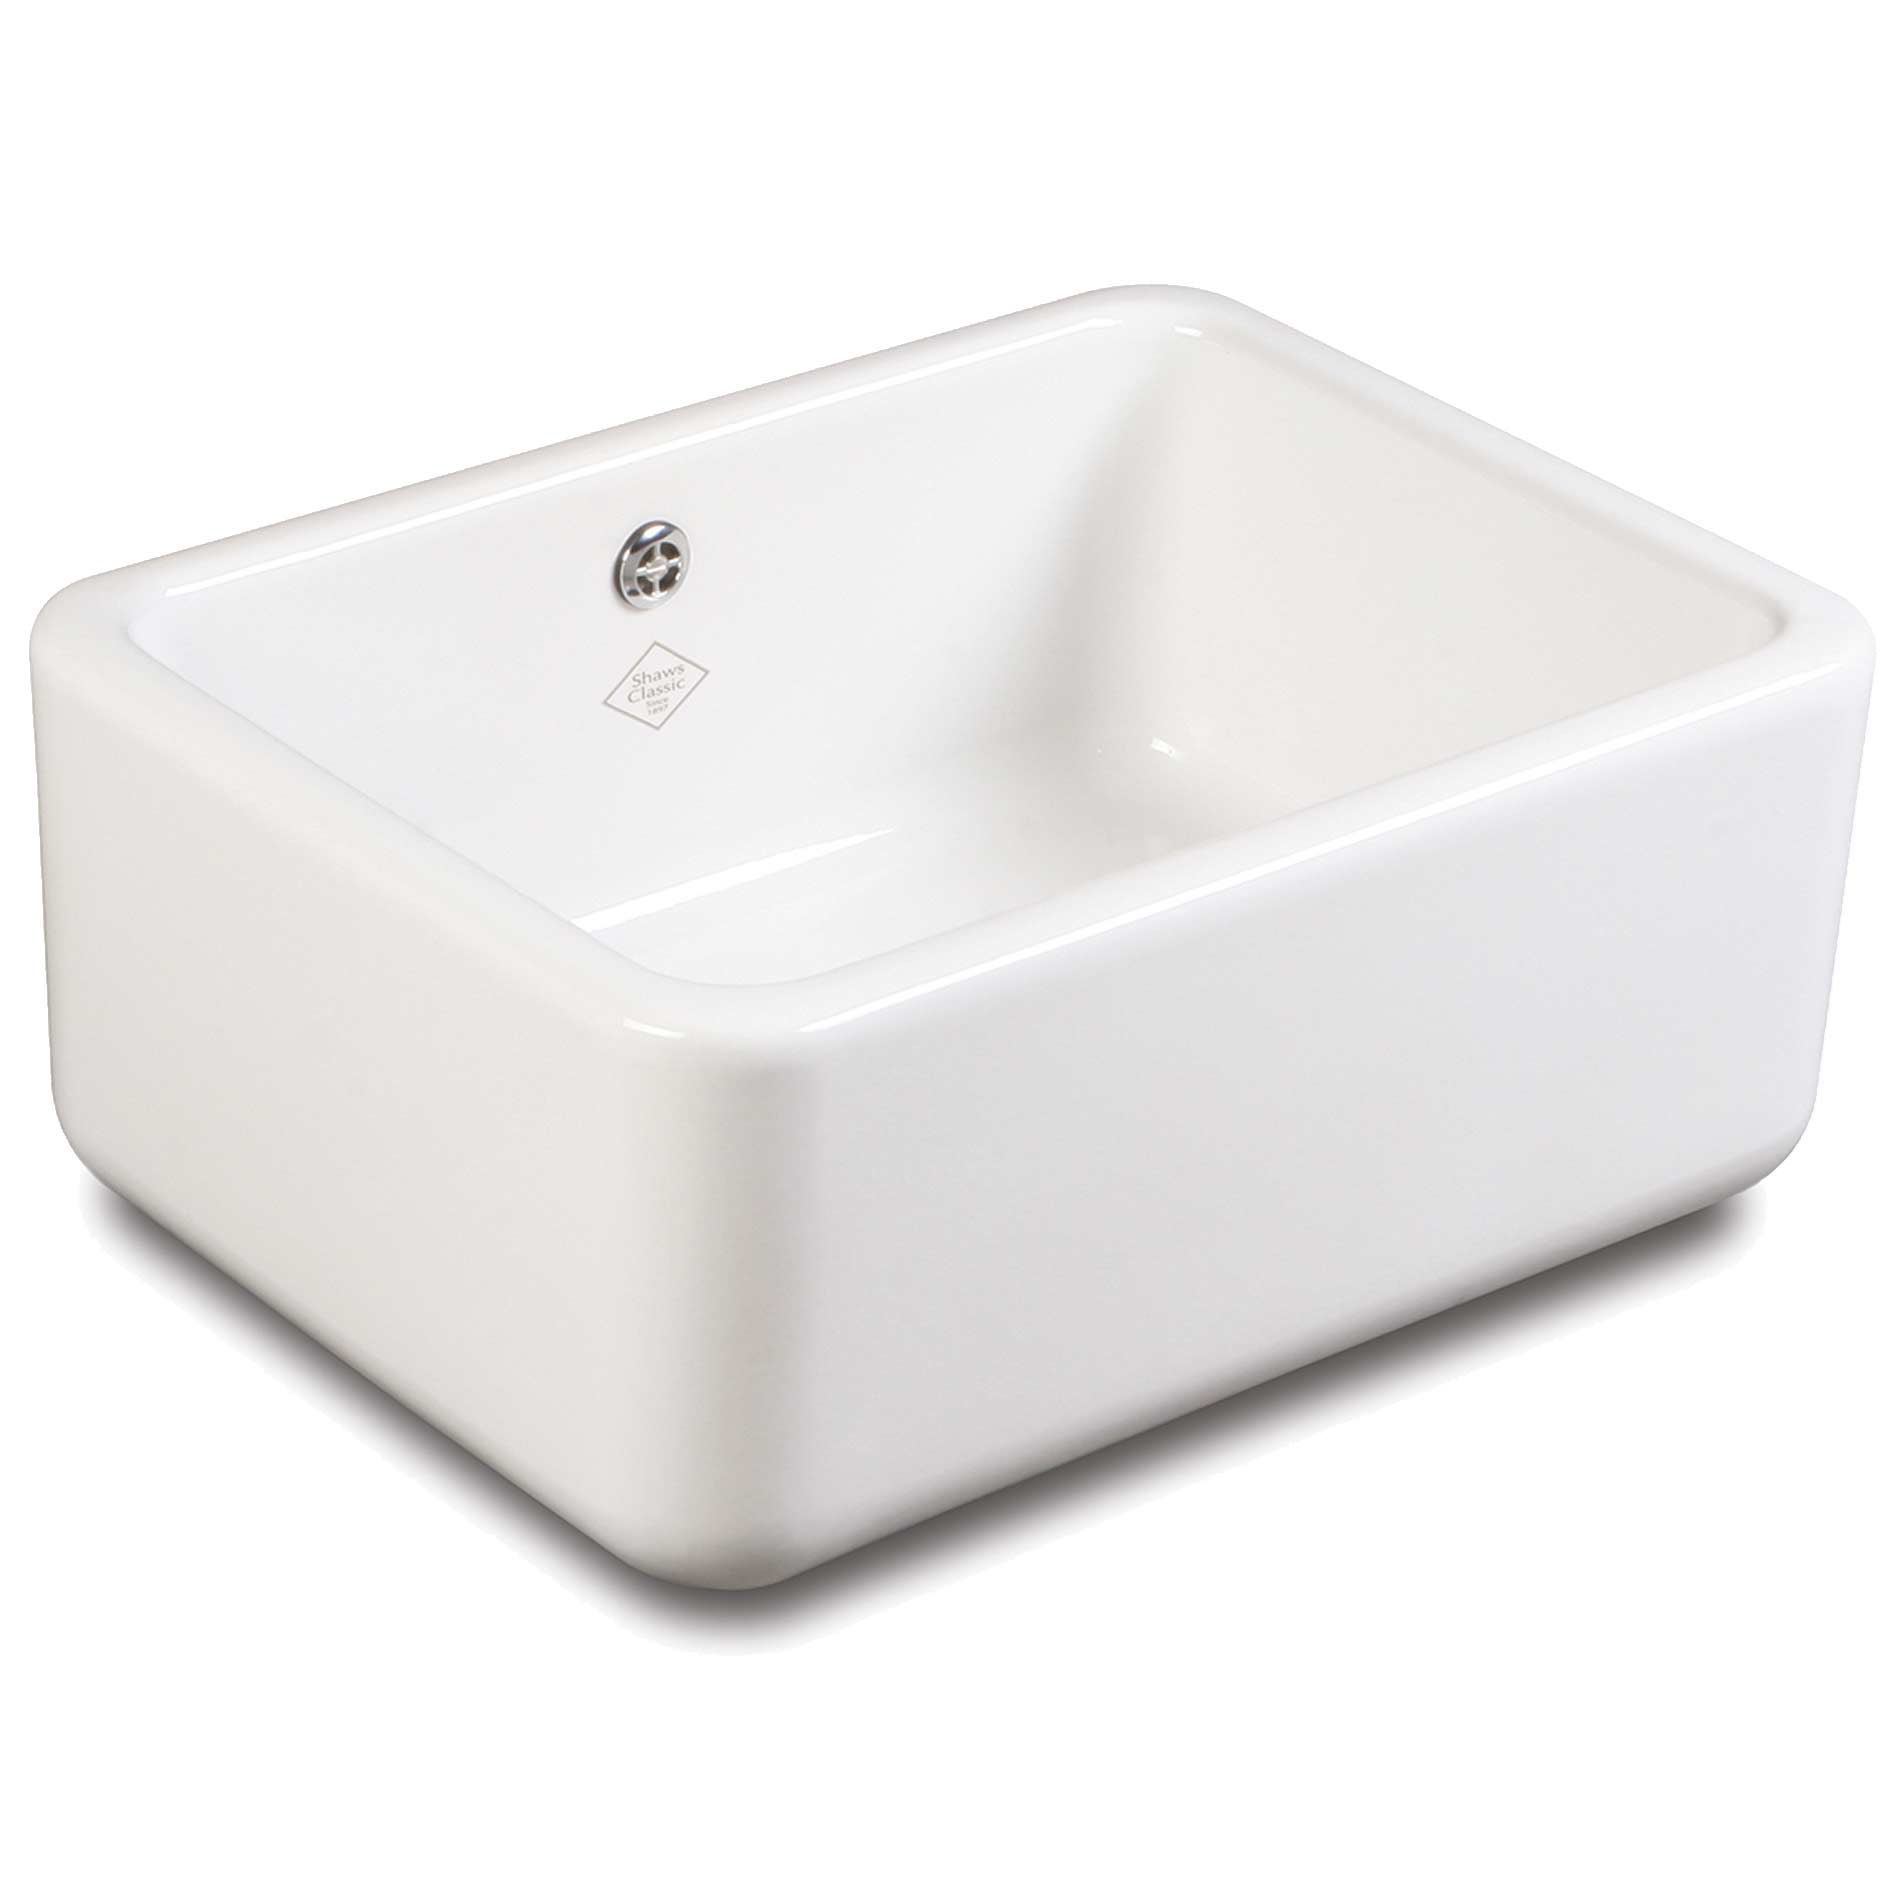 Butler Sink : Shaws: Classic Butler 600 Ceramic Sink - Kitchen Sinks & Taps